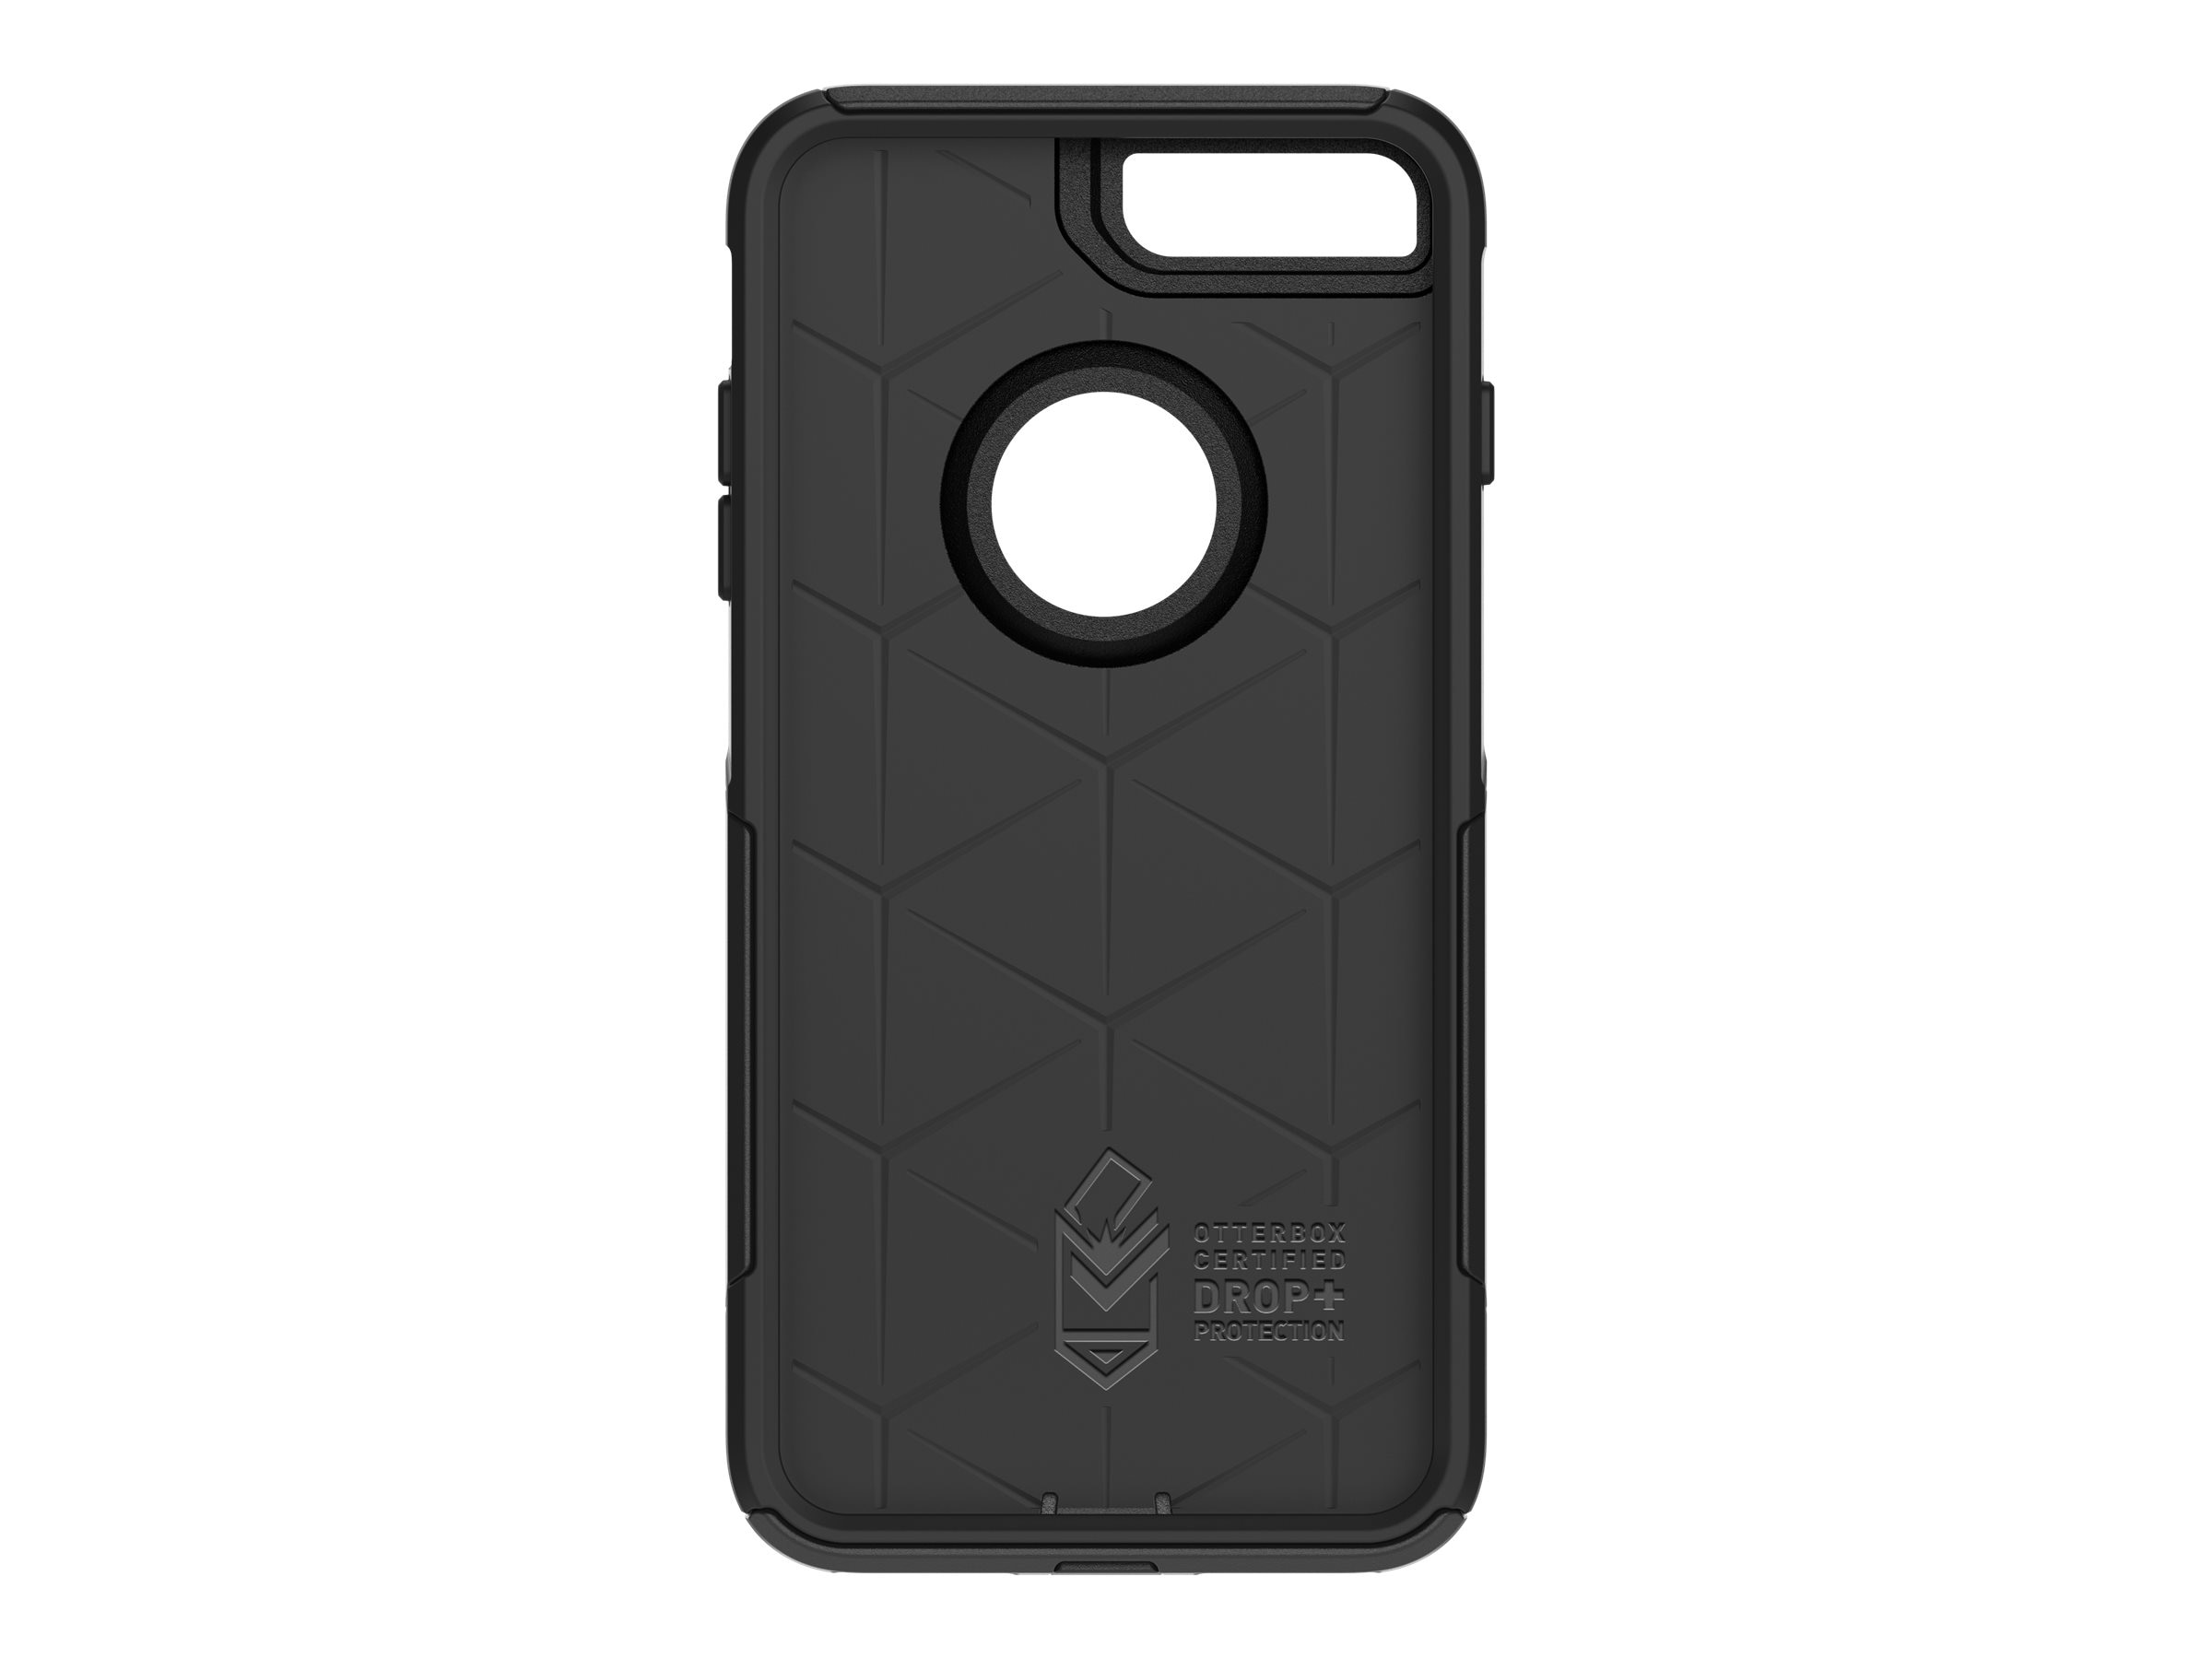 OtterBox Commuter Case for iPhone 7 Plus, Black